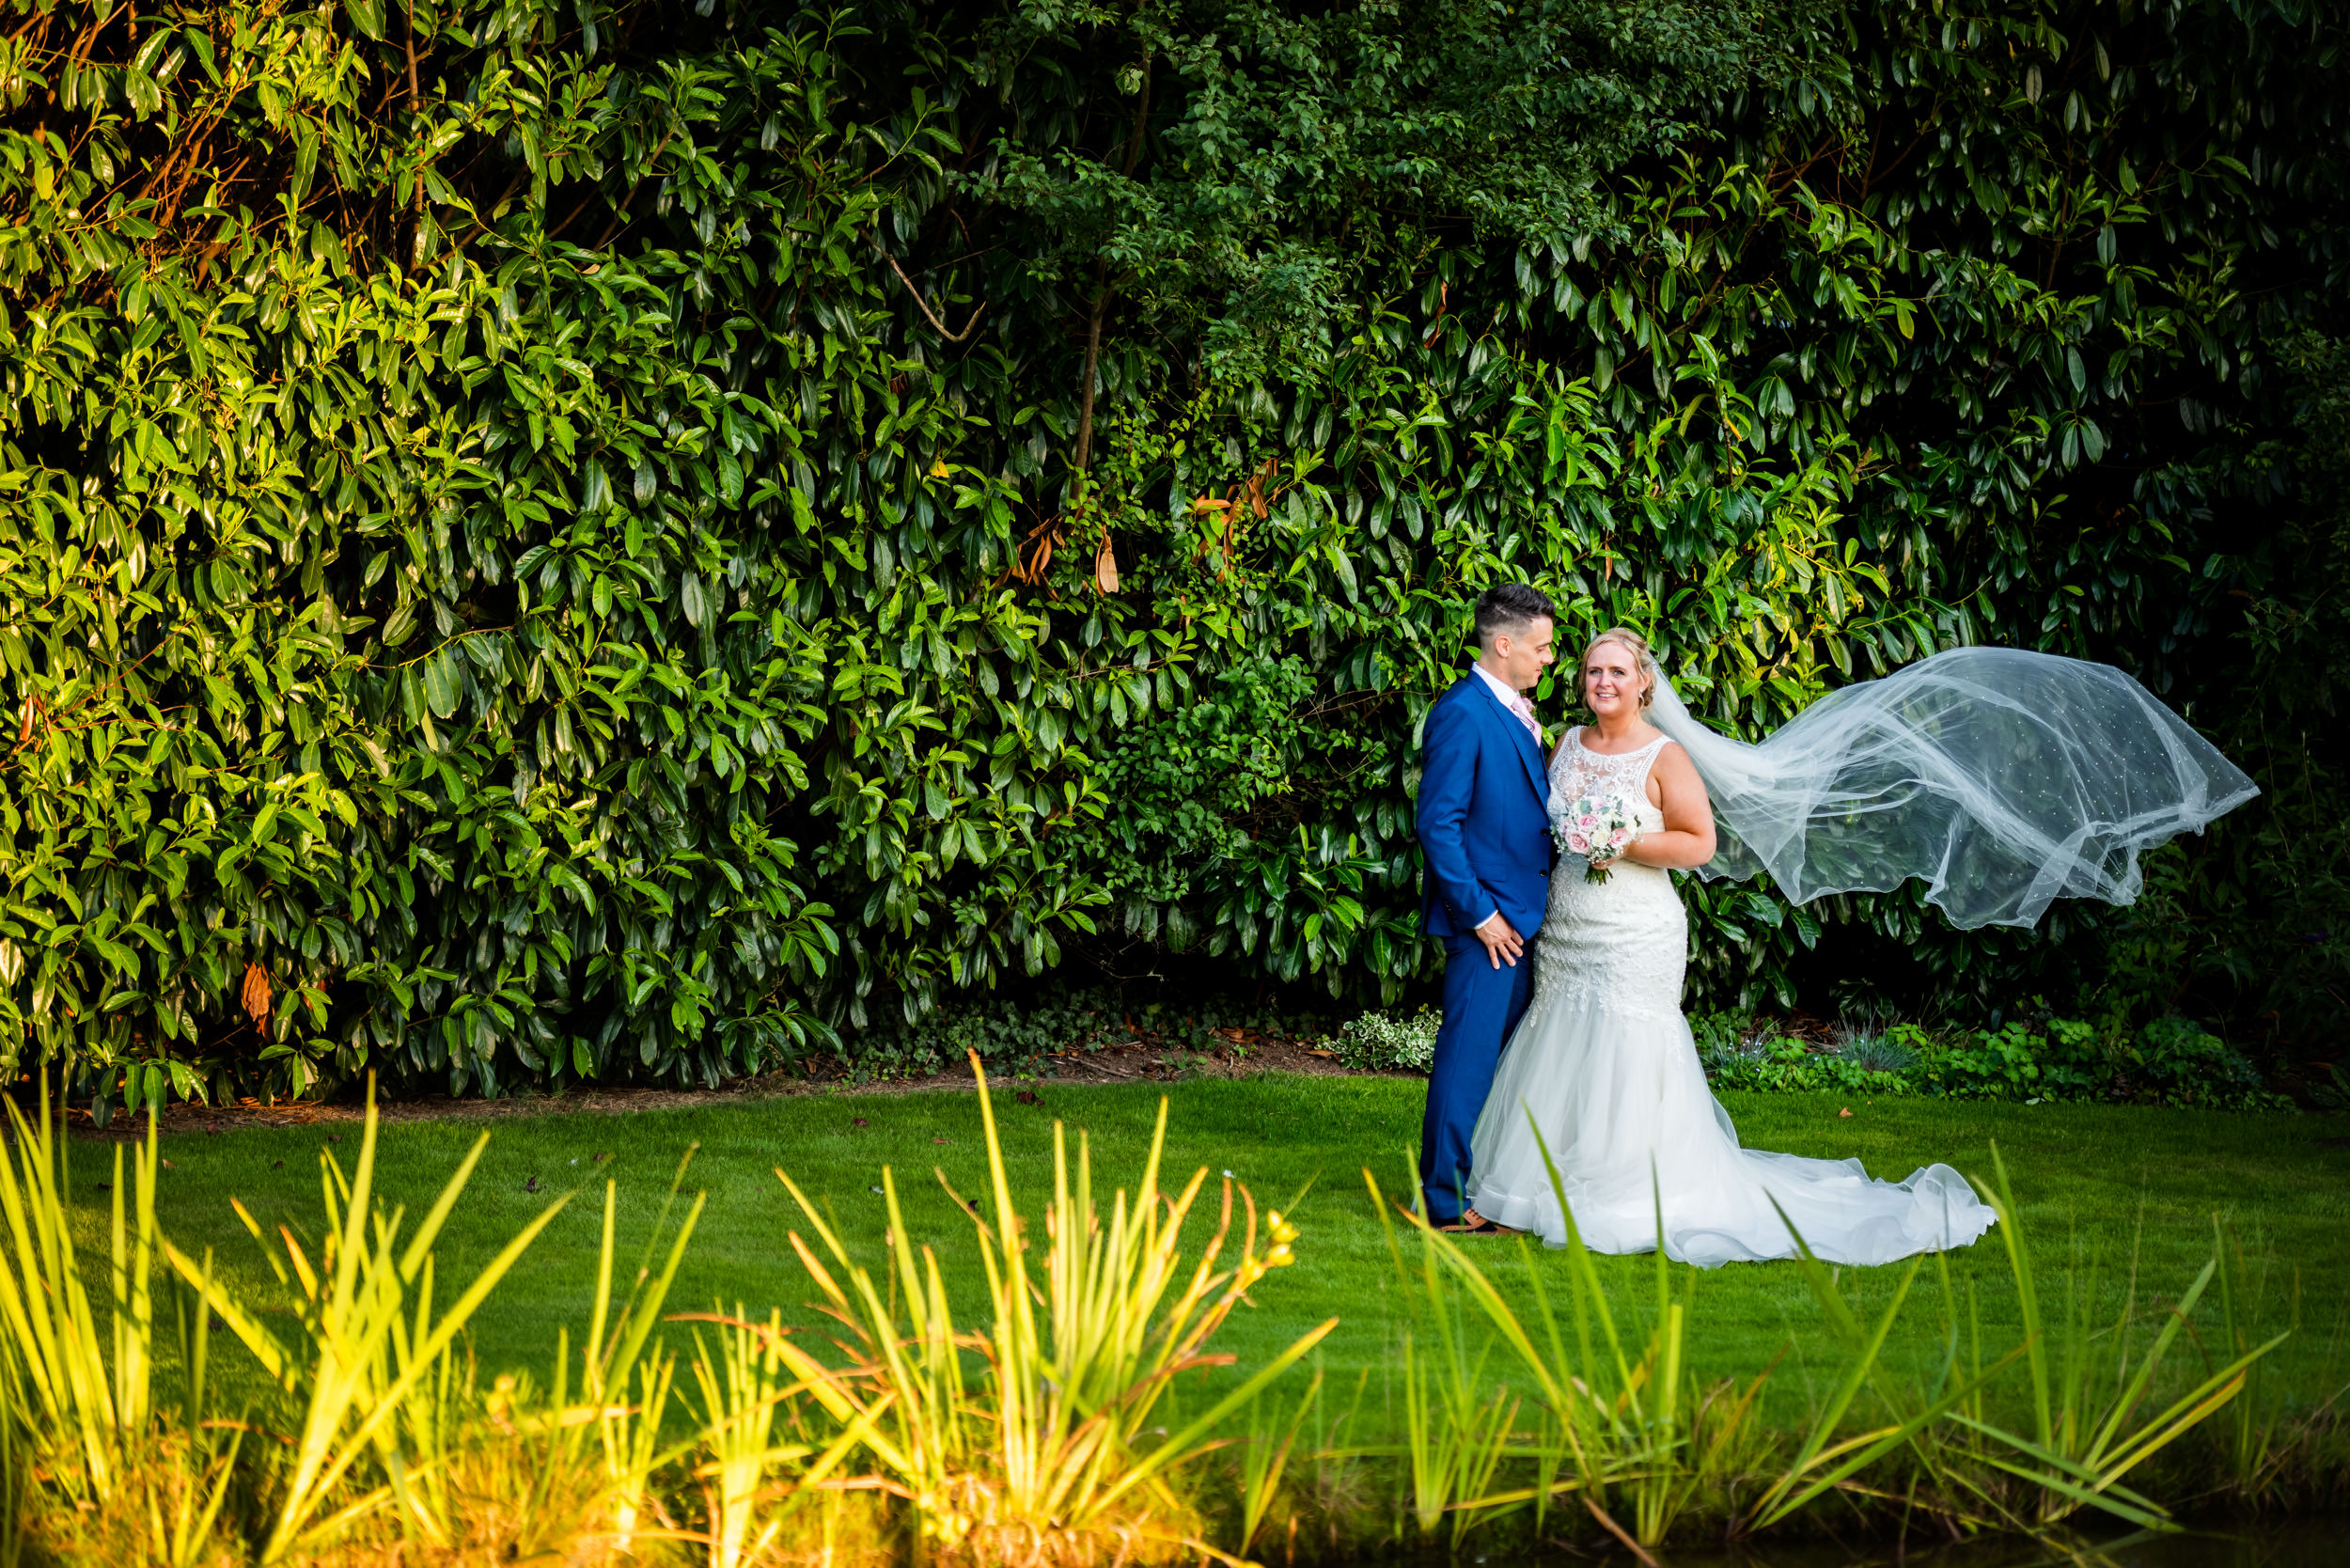 Bride and Groom posing for a photo in the Gardens of Redhouse Barn